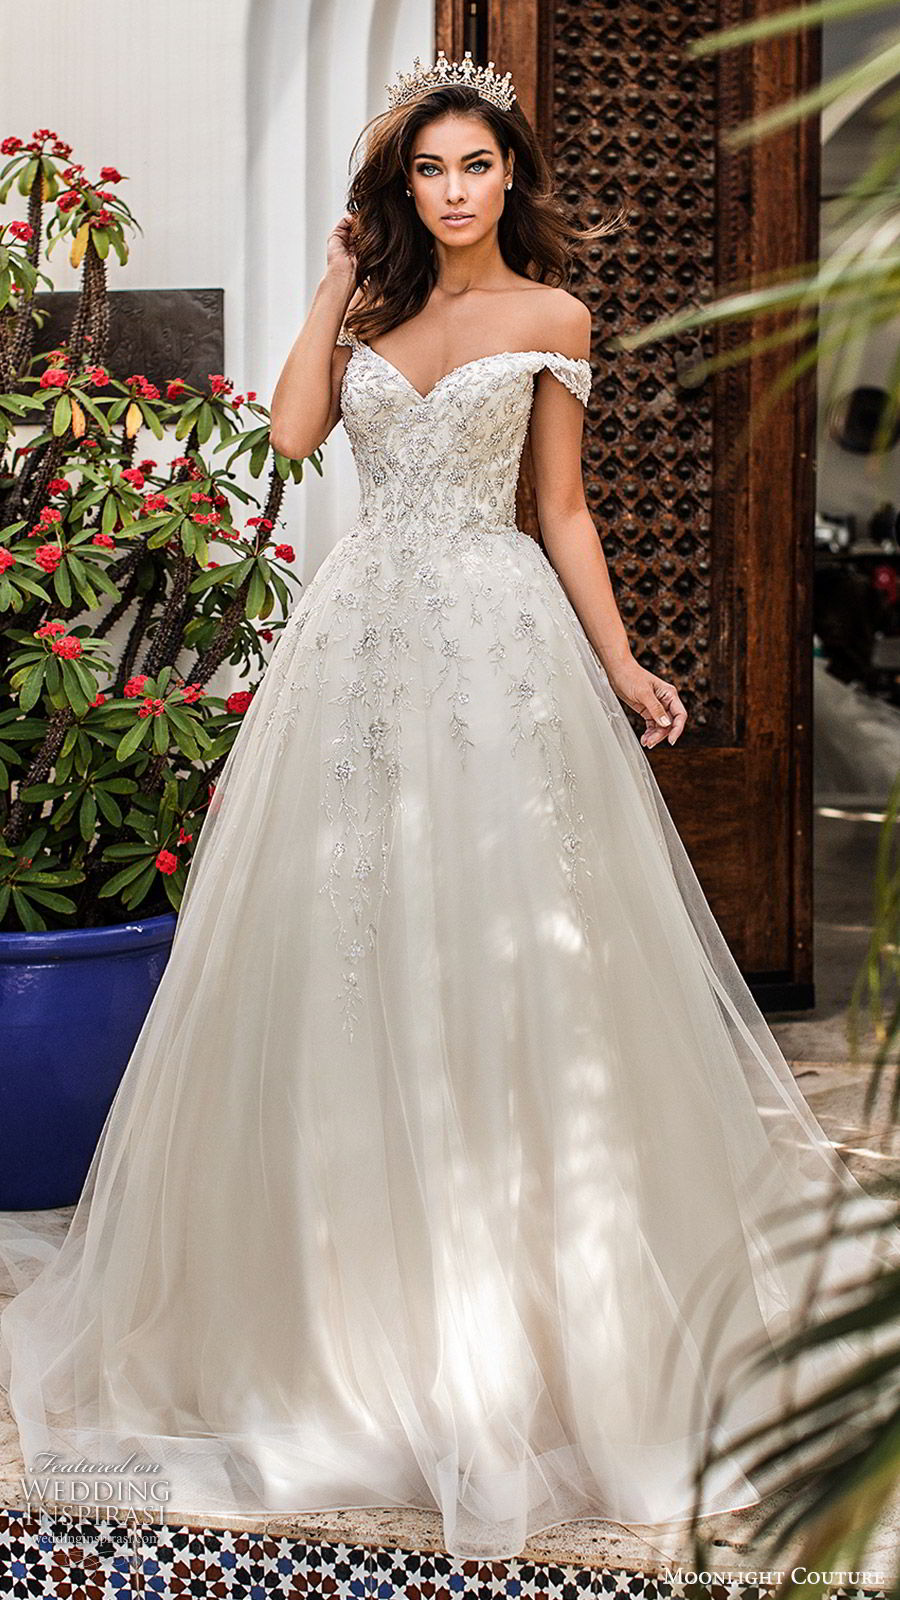 moonlight couture fall 2019 bridal off shoulder sweetheart embellished bodice a line ball gown wedding dress (7) princess romantic glitzy sheer back chapel train mv